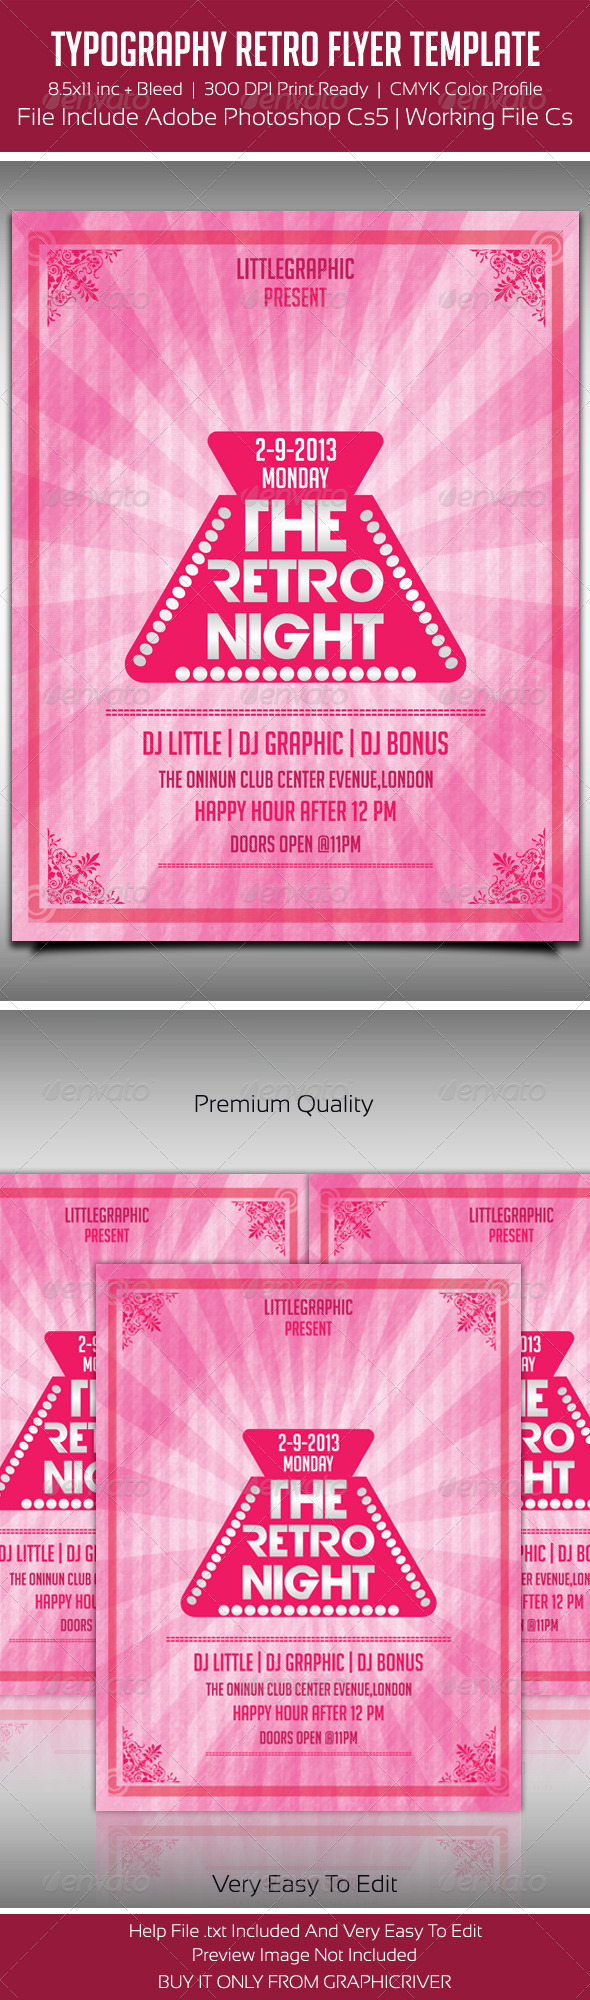 Typography Retro Party Flyer Template 2 - Flyers Print Templates